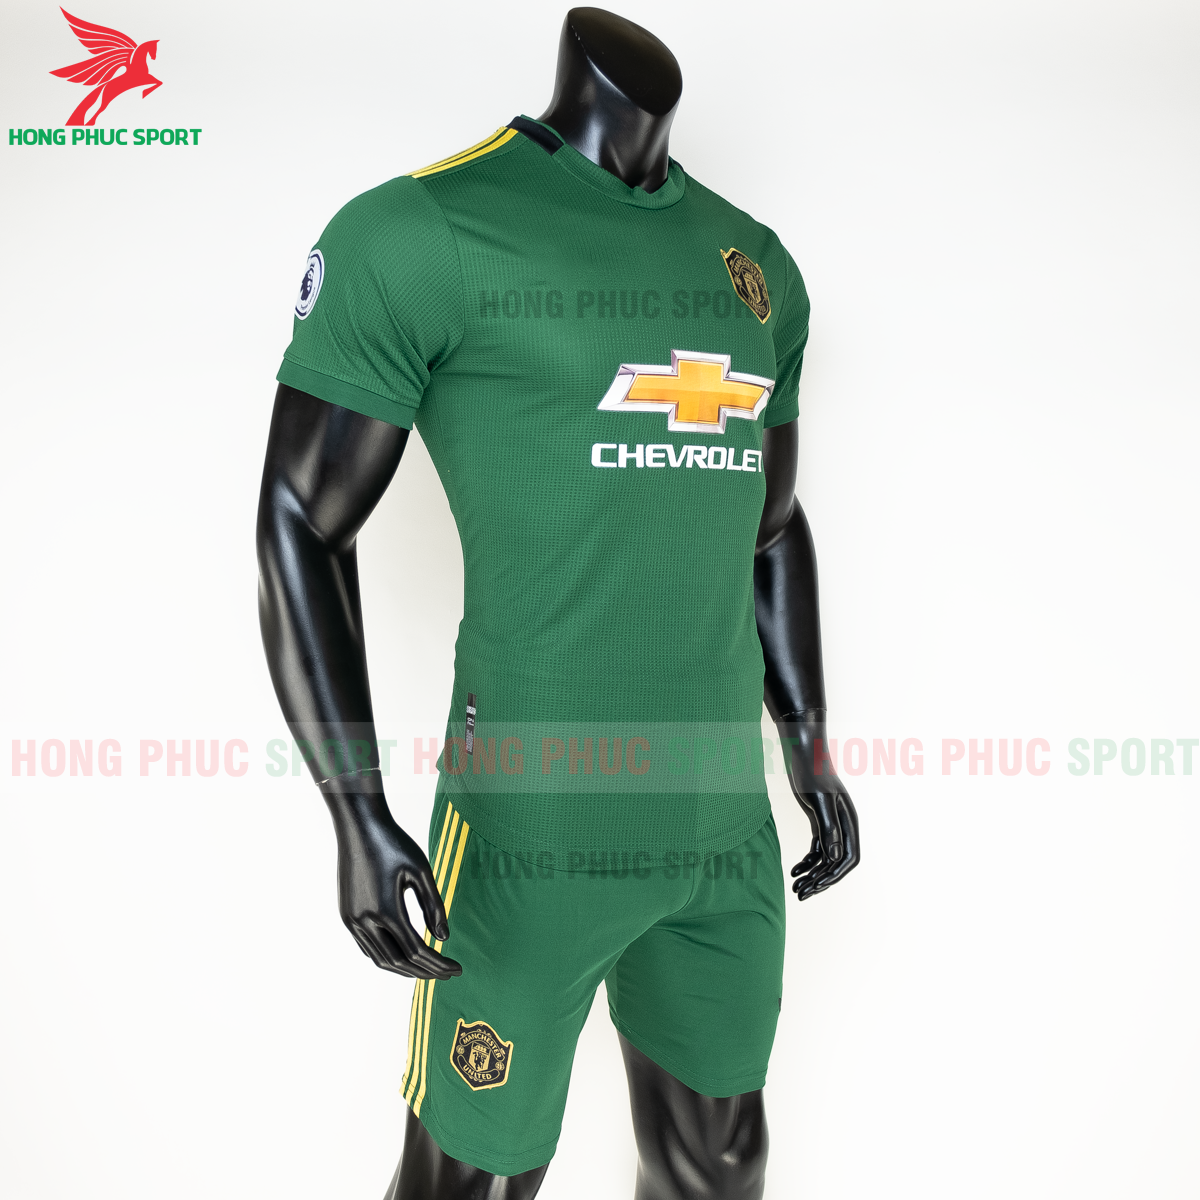 https://cdn.hongphucsport.com/unsafe/s4.shopbay.vn/files/285/ao-manchester-united-20-21-phien-ban-fan-hang-thailand-4-5fa0c0aeef464.png